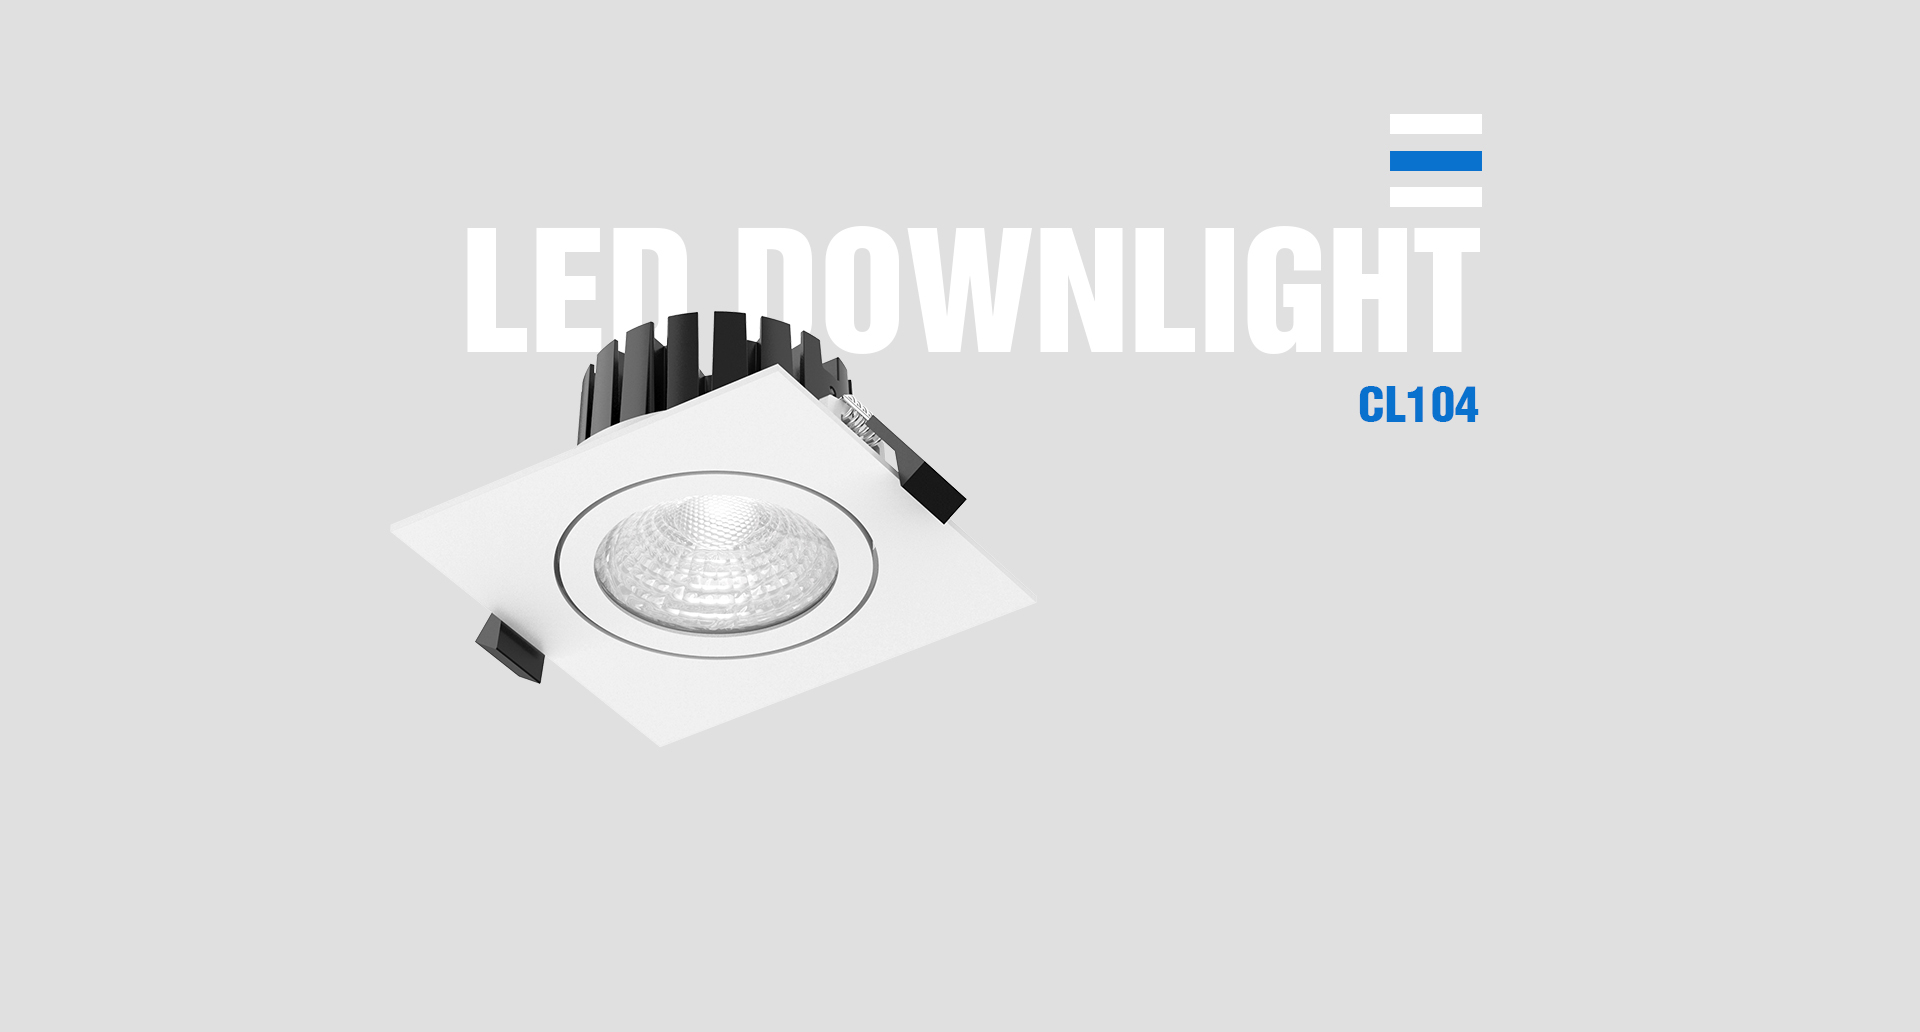 CL104 COB LED Downlight Replacement_01